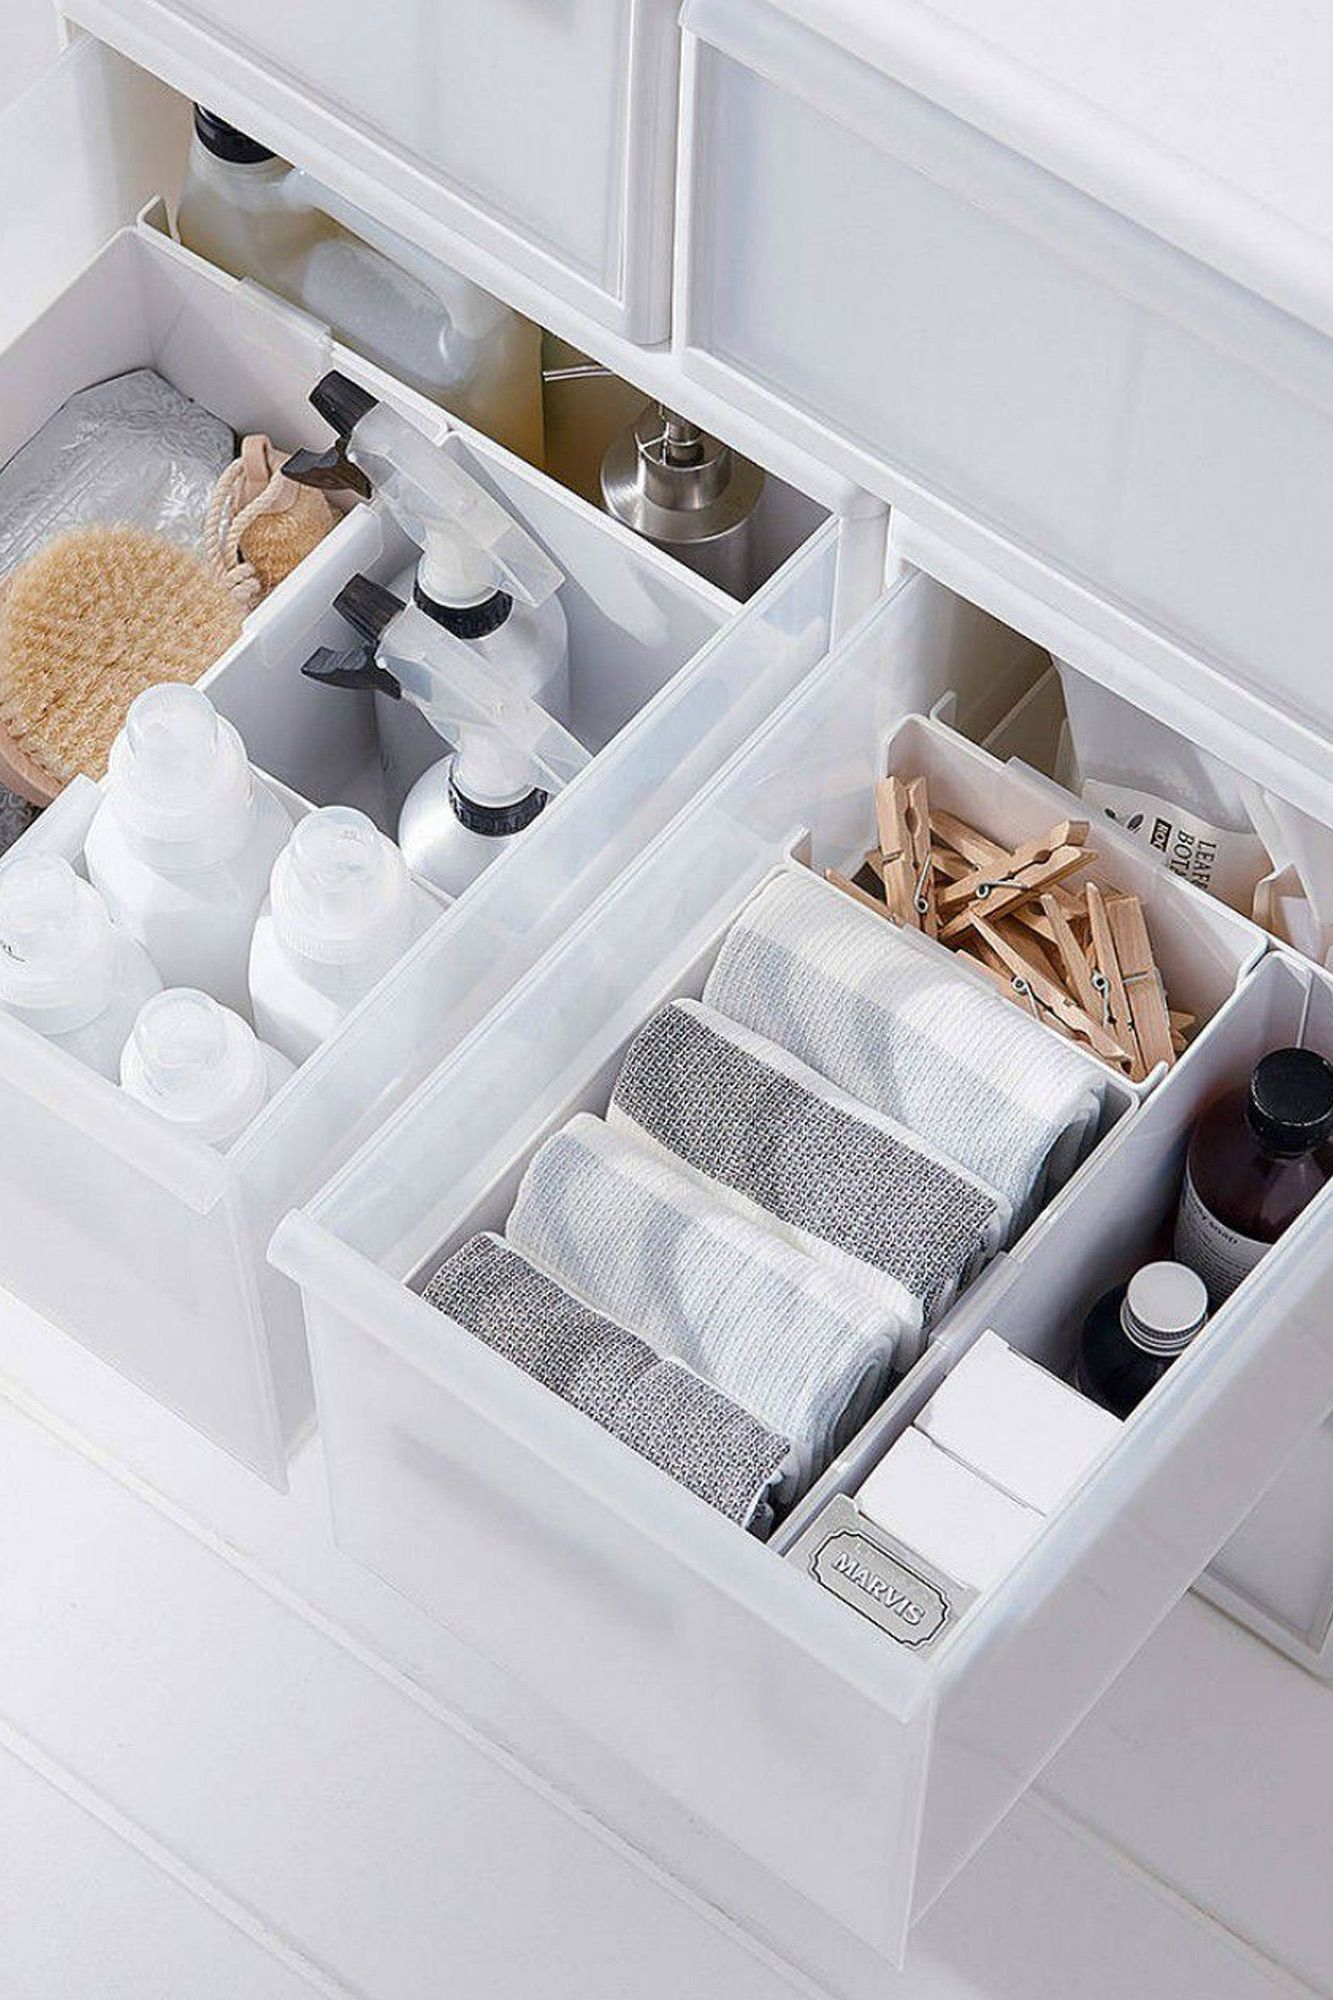 Storage drawer tidy